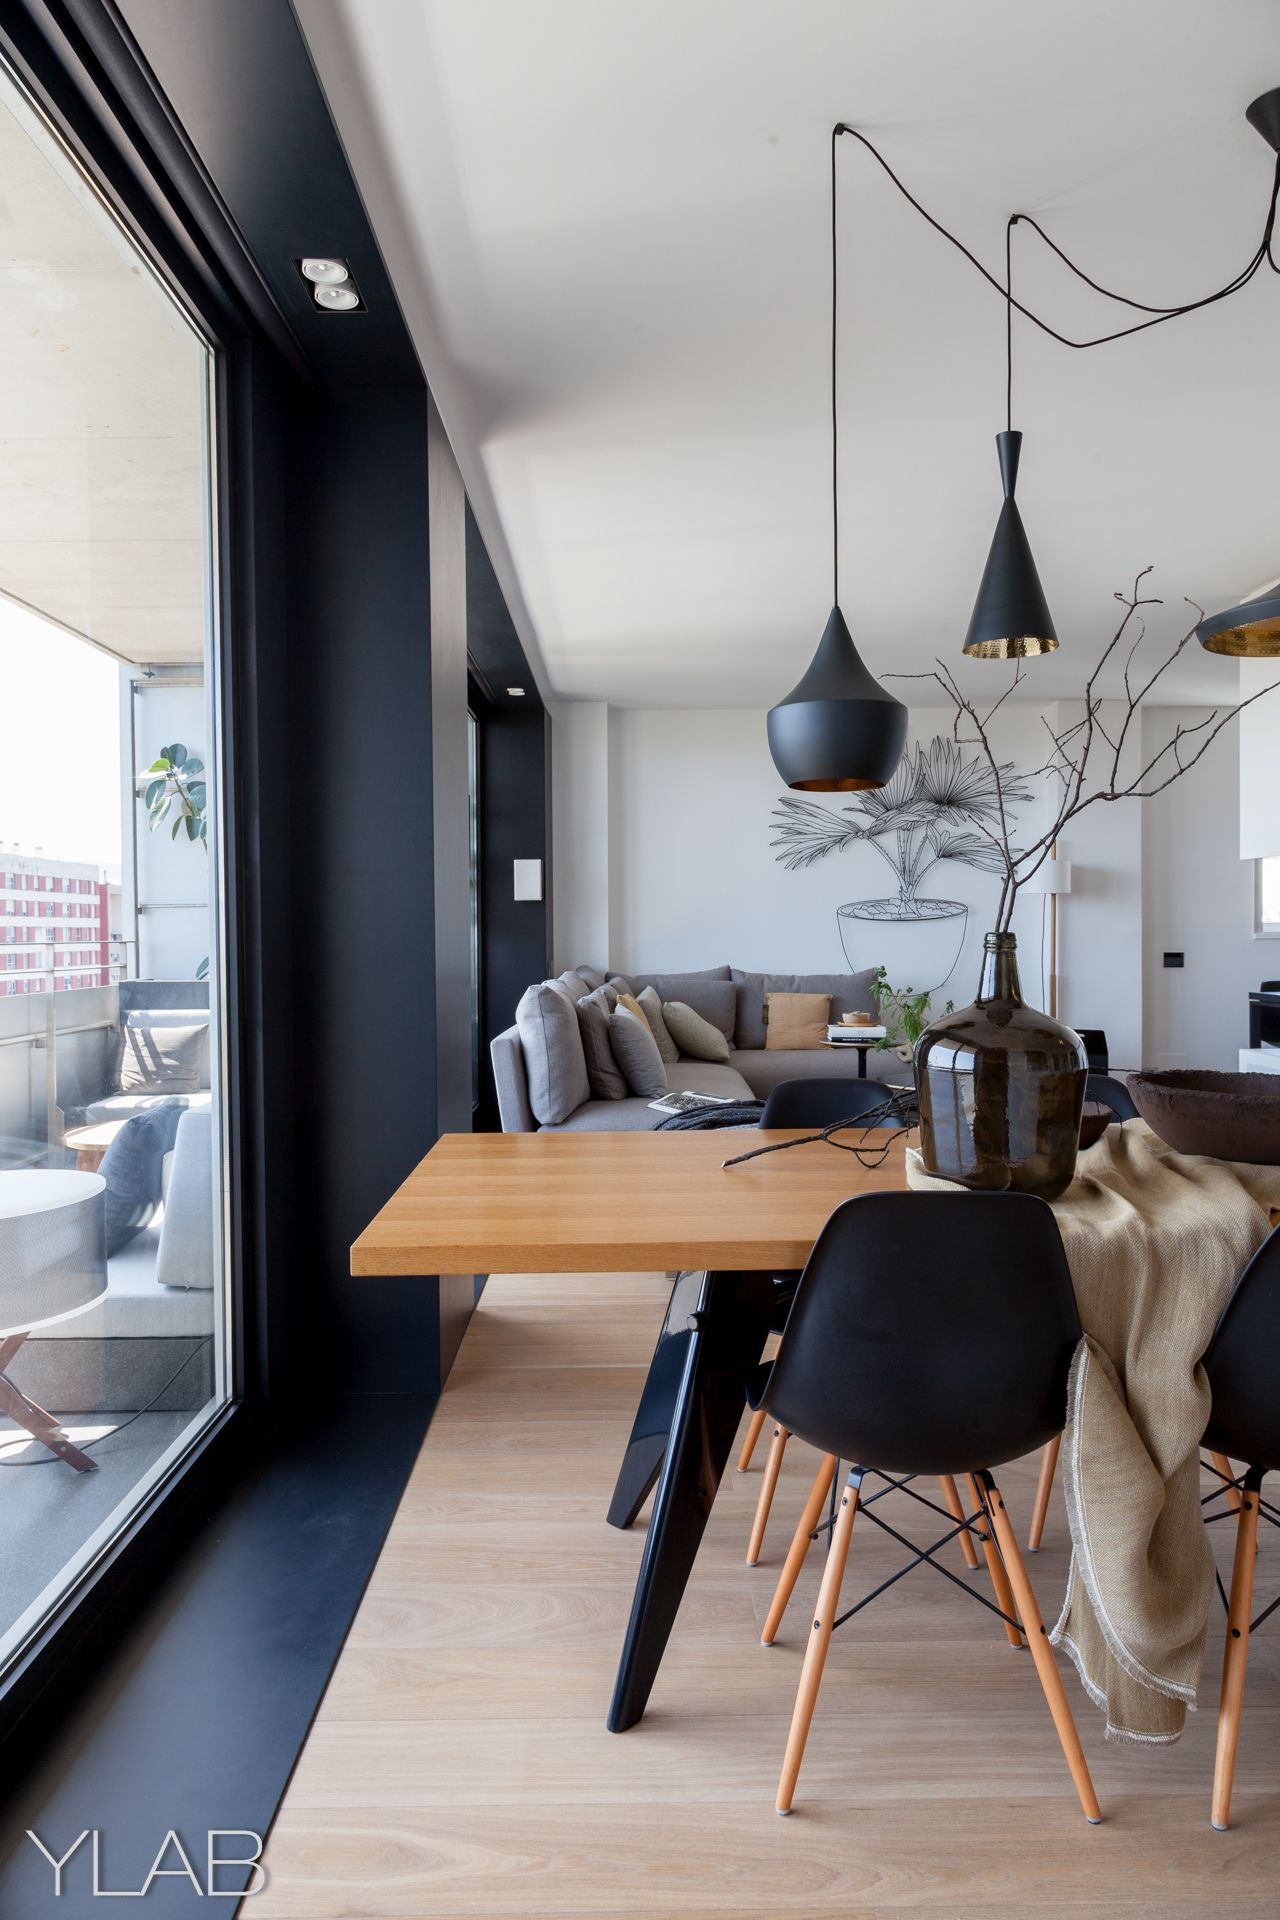 Diagonal mar apartment by ylab arquitectos barcelona